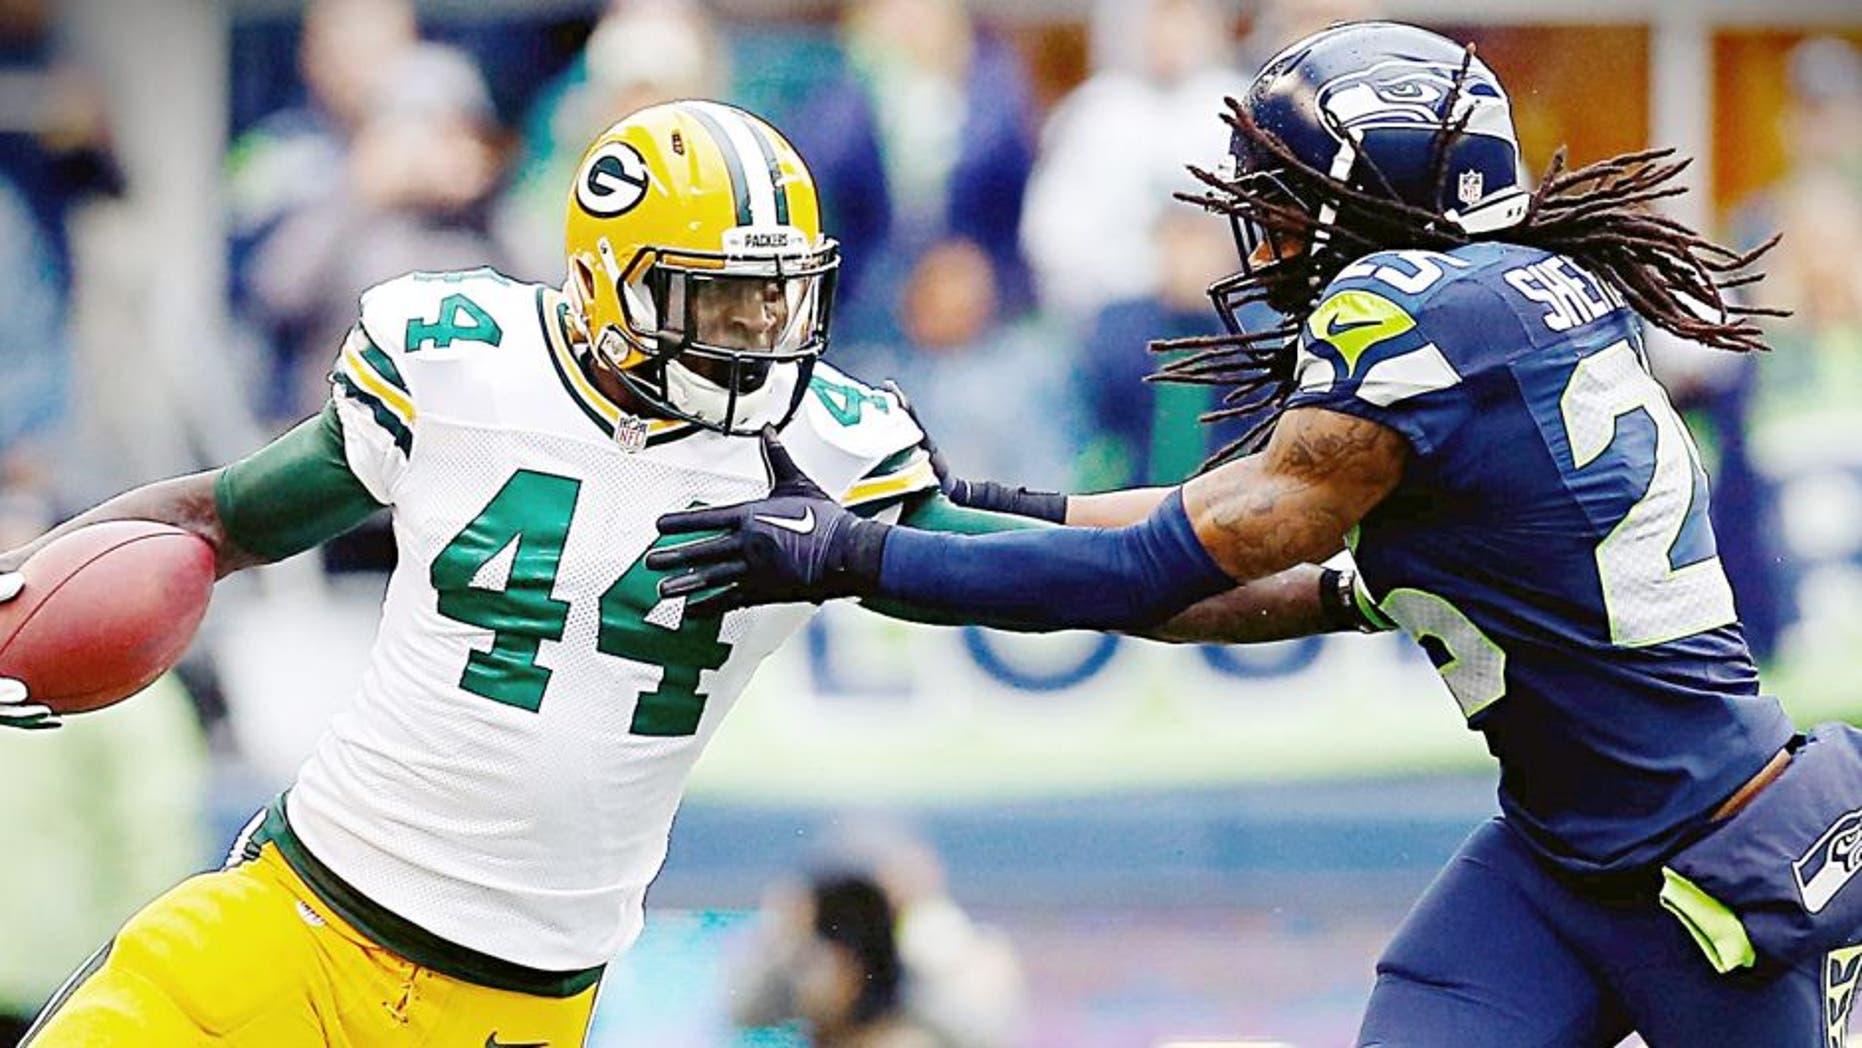 SEATTLE, WA - JANUARY 18: James Starks #44 of the Green Bay Packers gives Richard Sherman #25 of the Seattle Seahawks a stiff arm as he runs with the ball during the second half of the 2015 NFC Championship game at CenturyLink Field on January 18, 2015 in Seattle, Washington. (Photo by Tom Pennington/Getty Images)